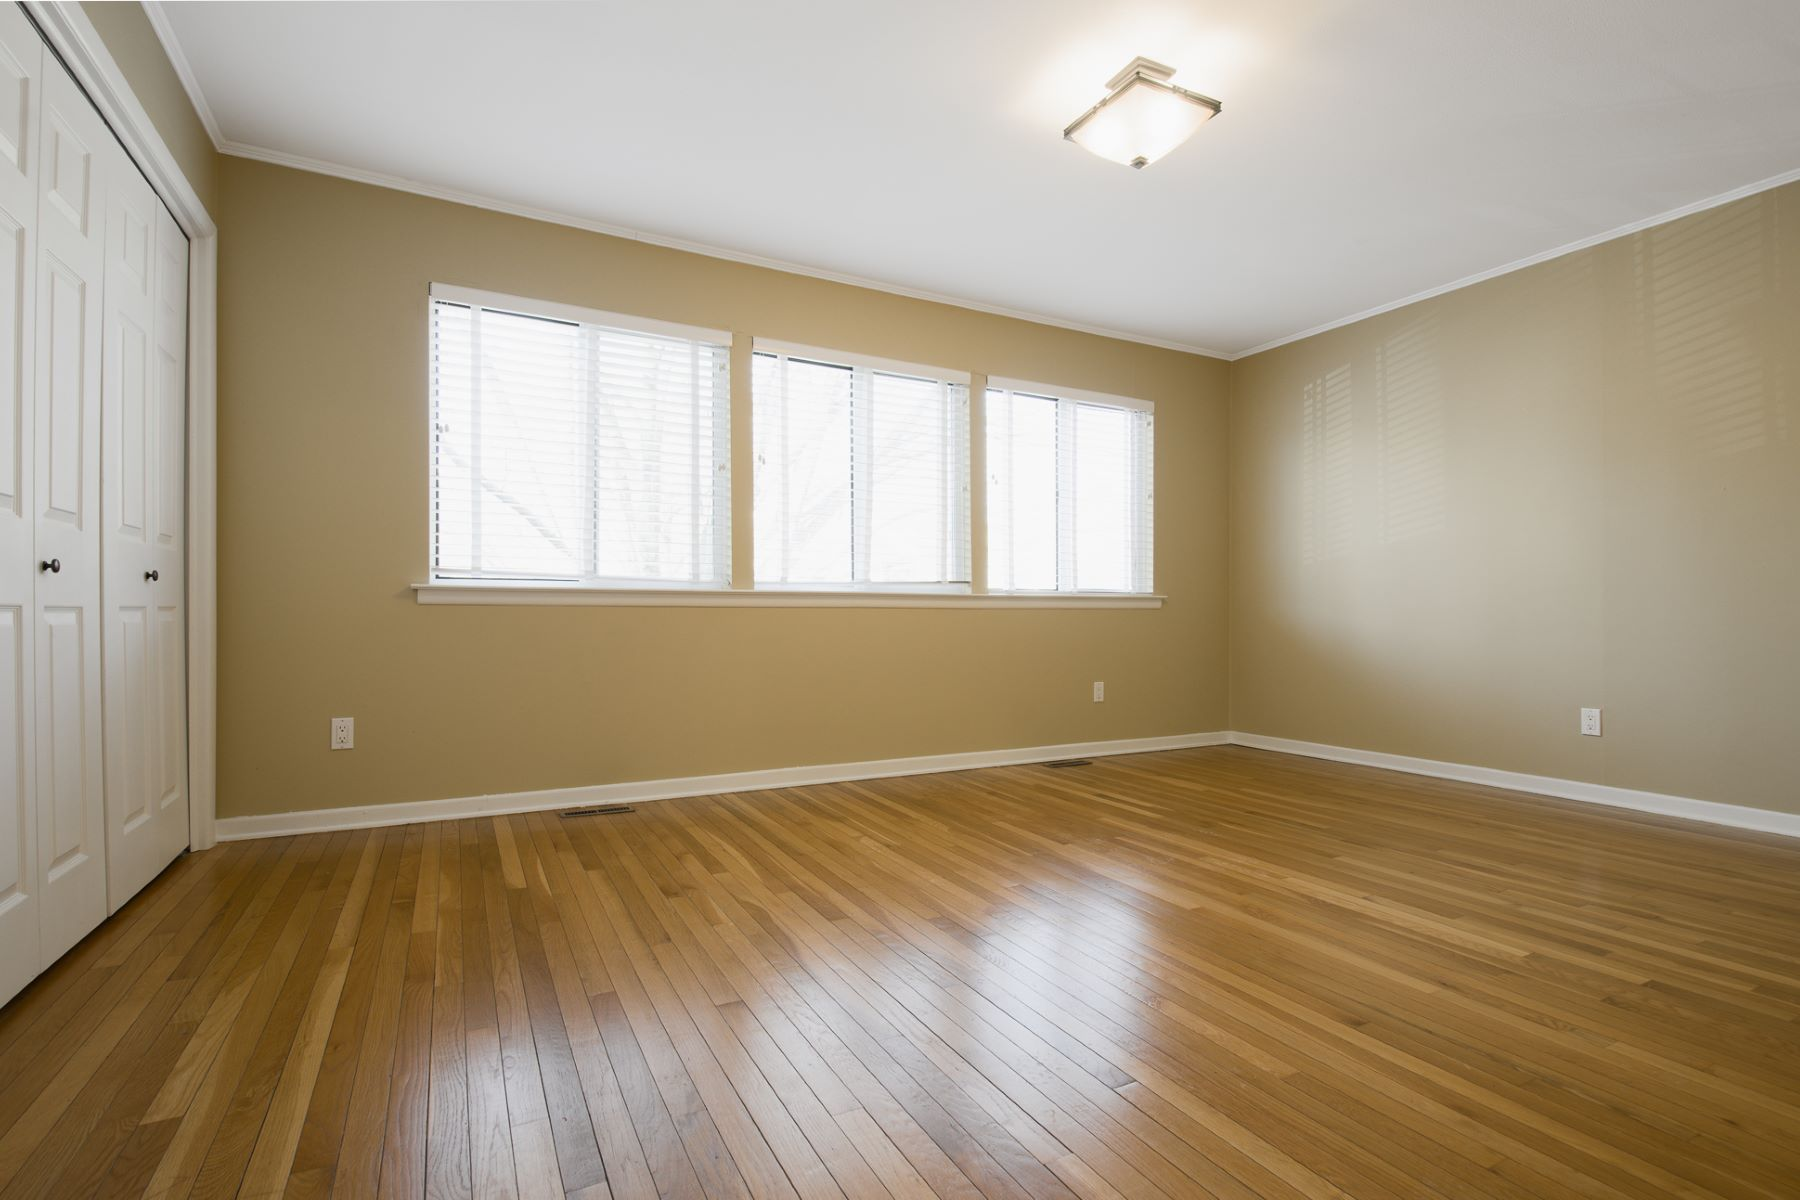 Additional photo for property listing at Stunning 2 Bedroom Queenston Commons for Rent! 17 Gordon Way Princeton, New Jersey 08540 United States